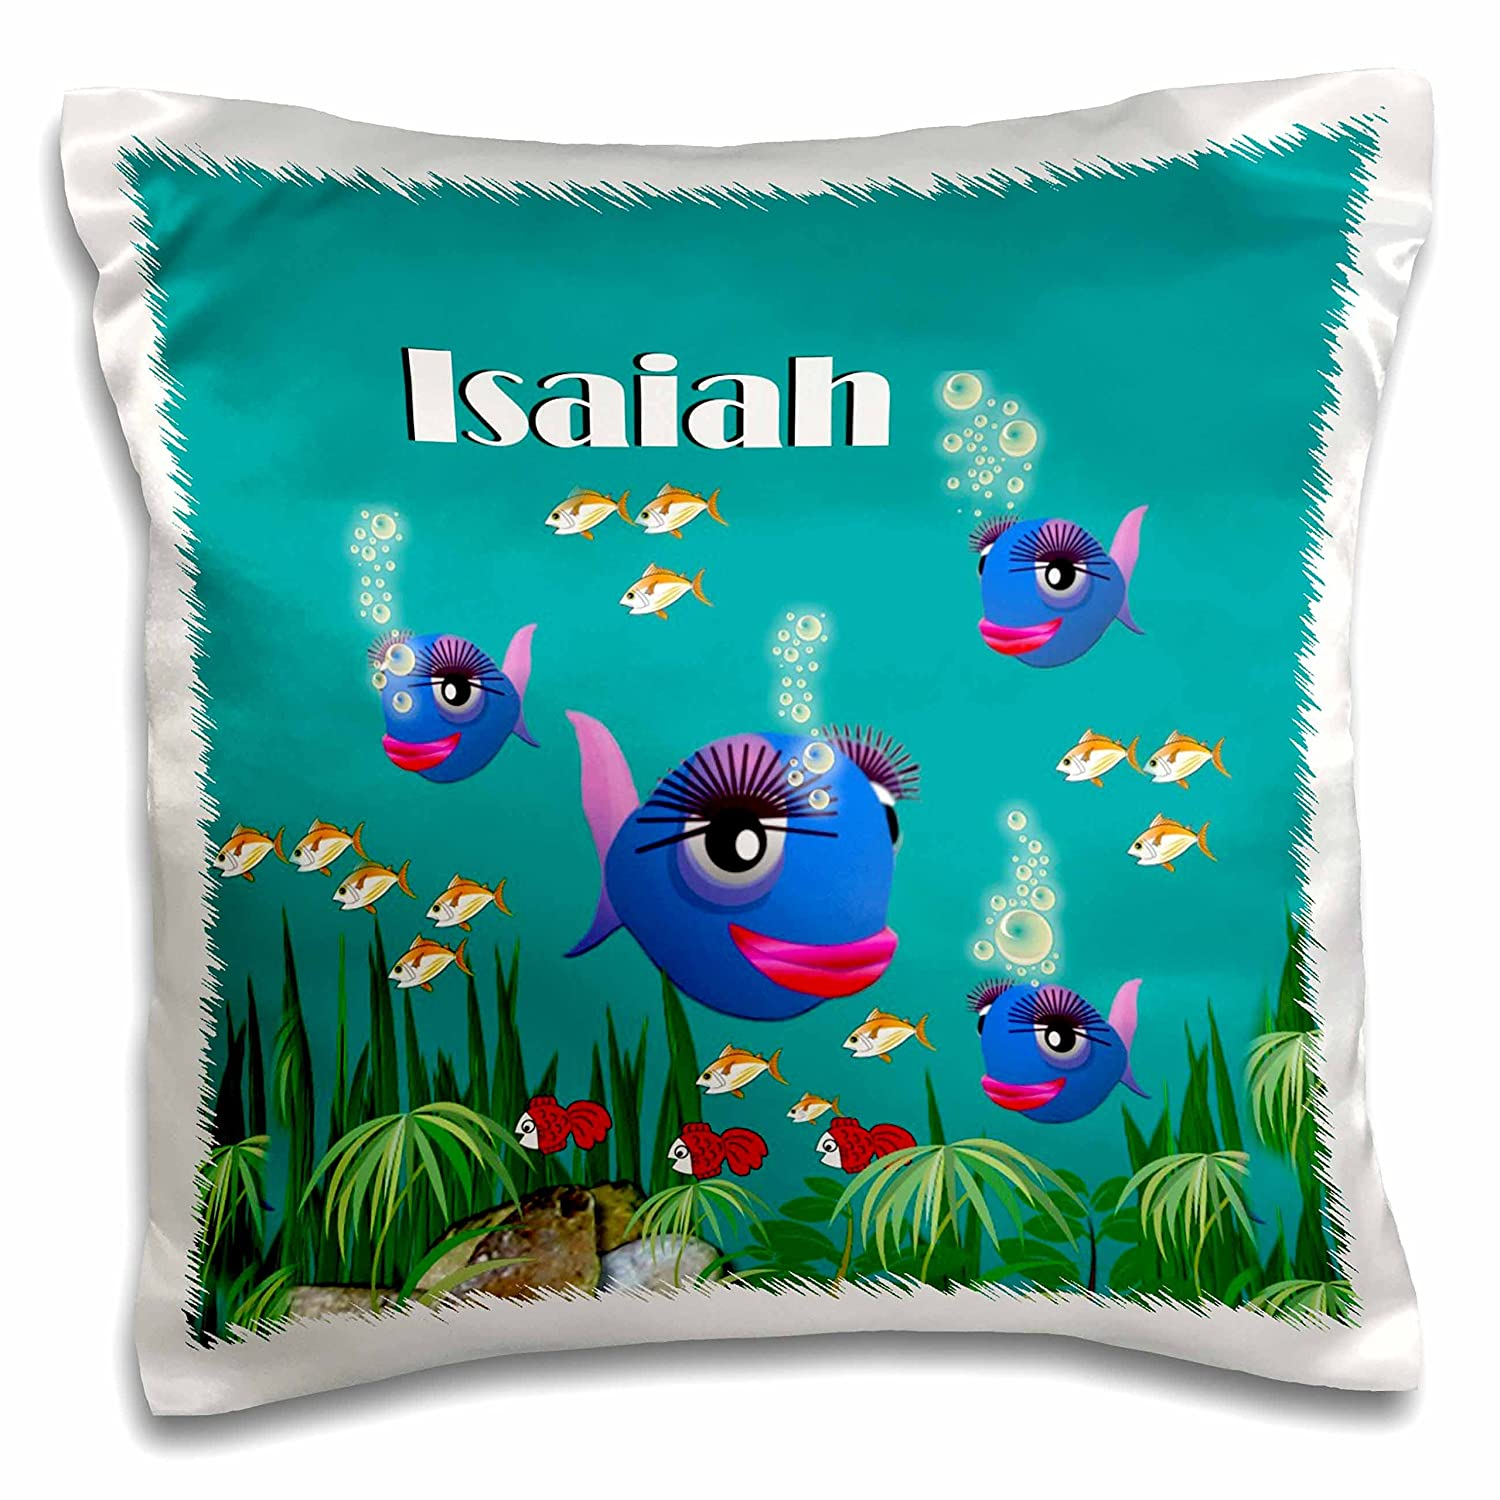 pc/_51205/_1 16x16 inch Pillow Case 3dRose SmudgeArt Male Child Name Design This Vibrant Artwork of Fish Under The sea is Personalized with The Name Isaiah